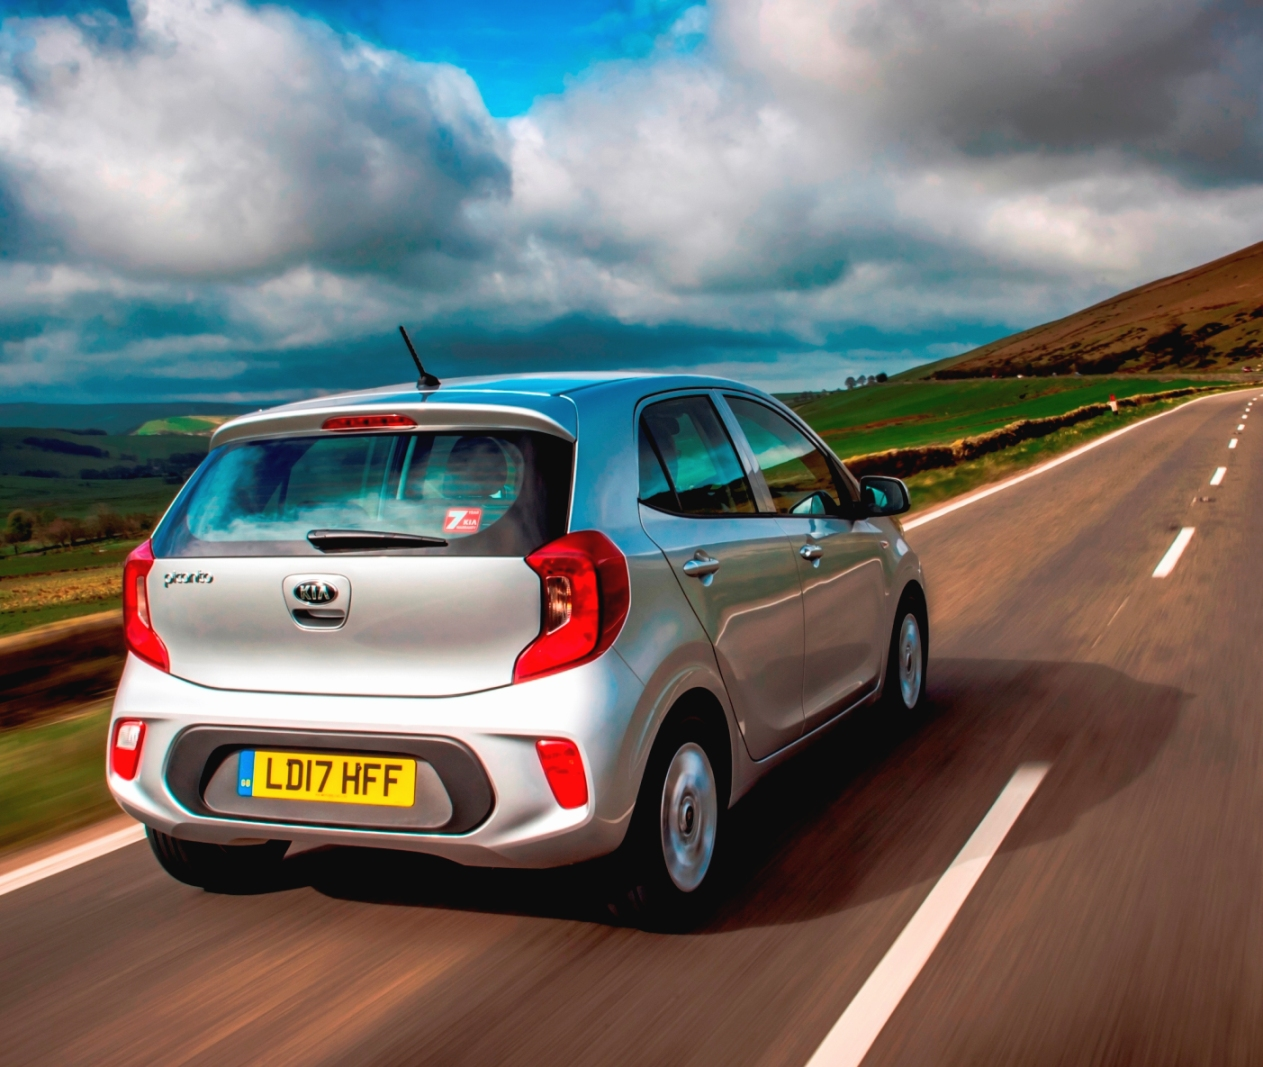 Kia Picanto 2 5 Door Hatchback: Kia News (their Cars Are Selling Well…) And New Picanto